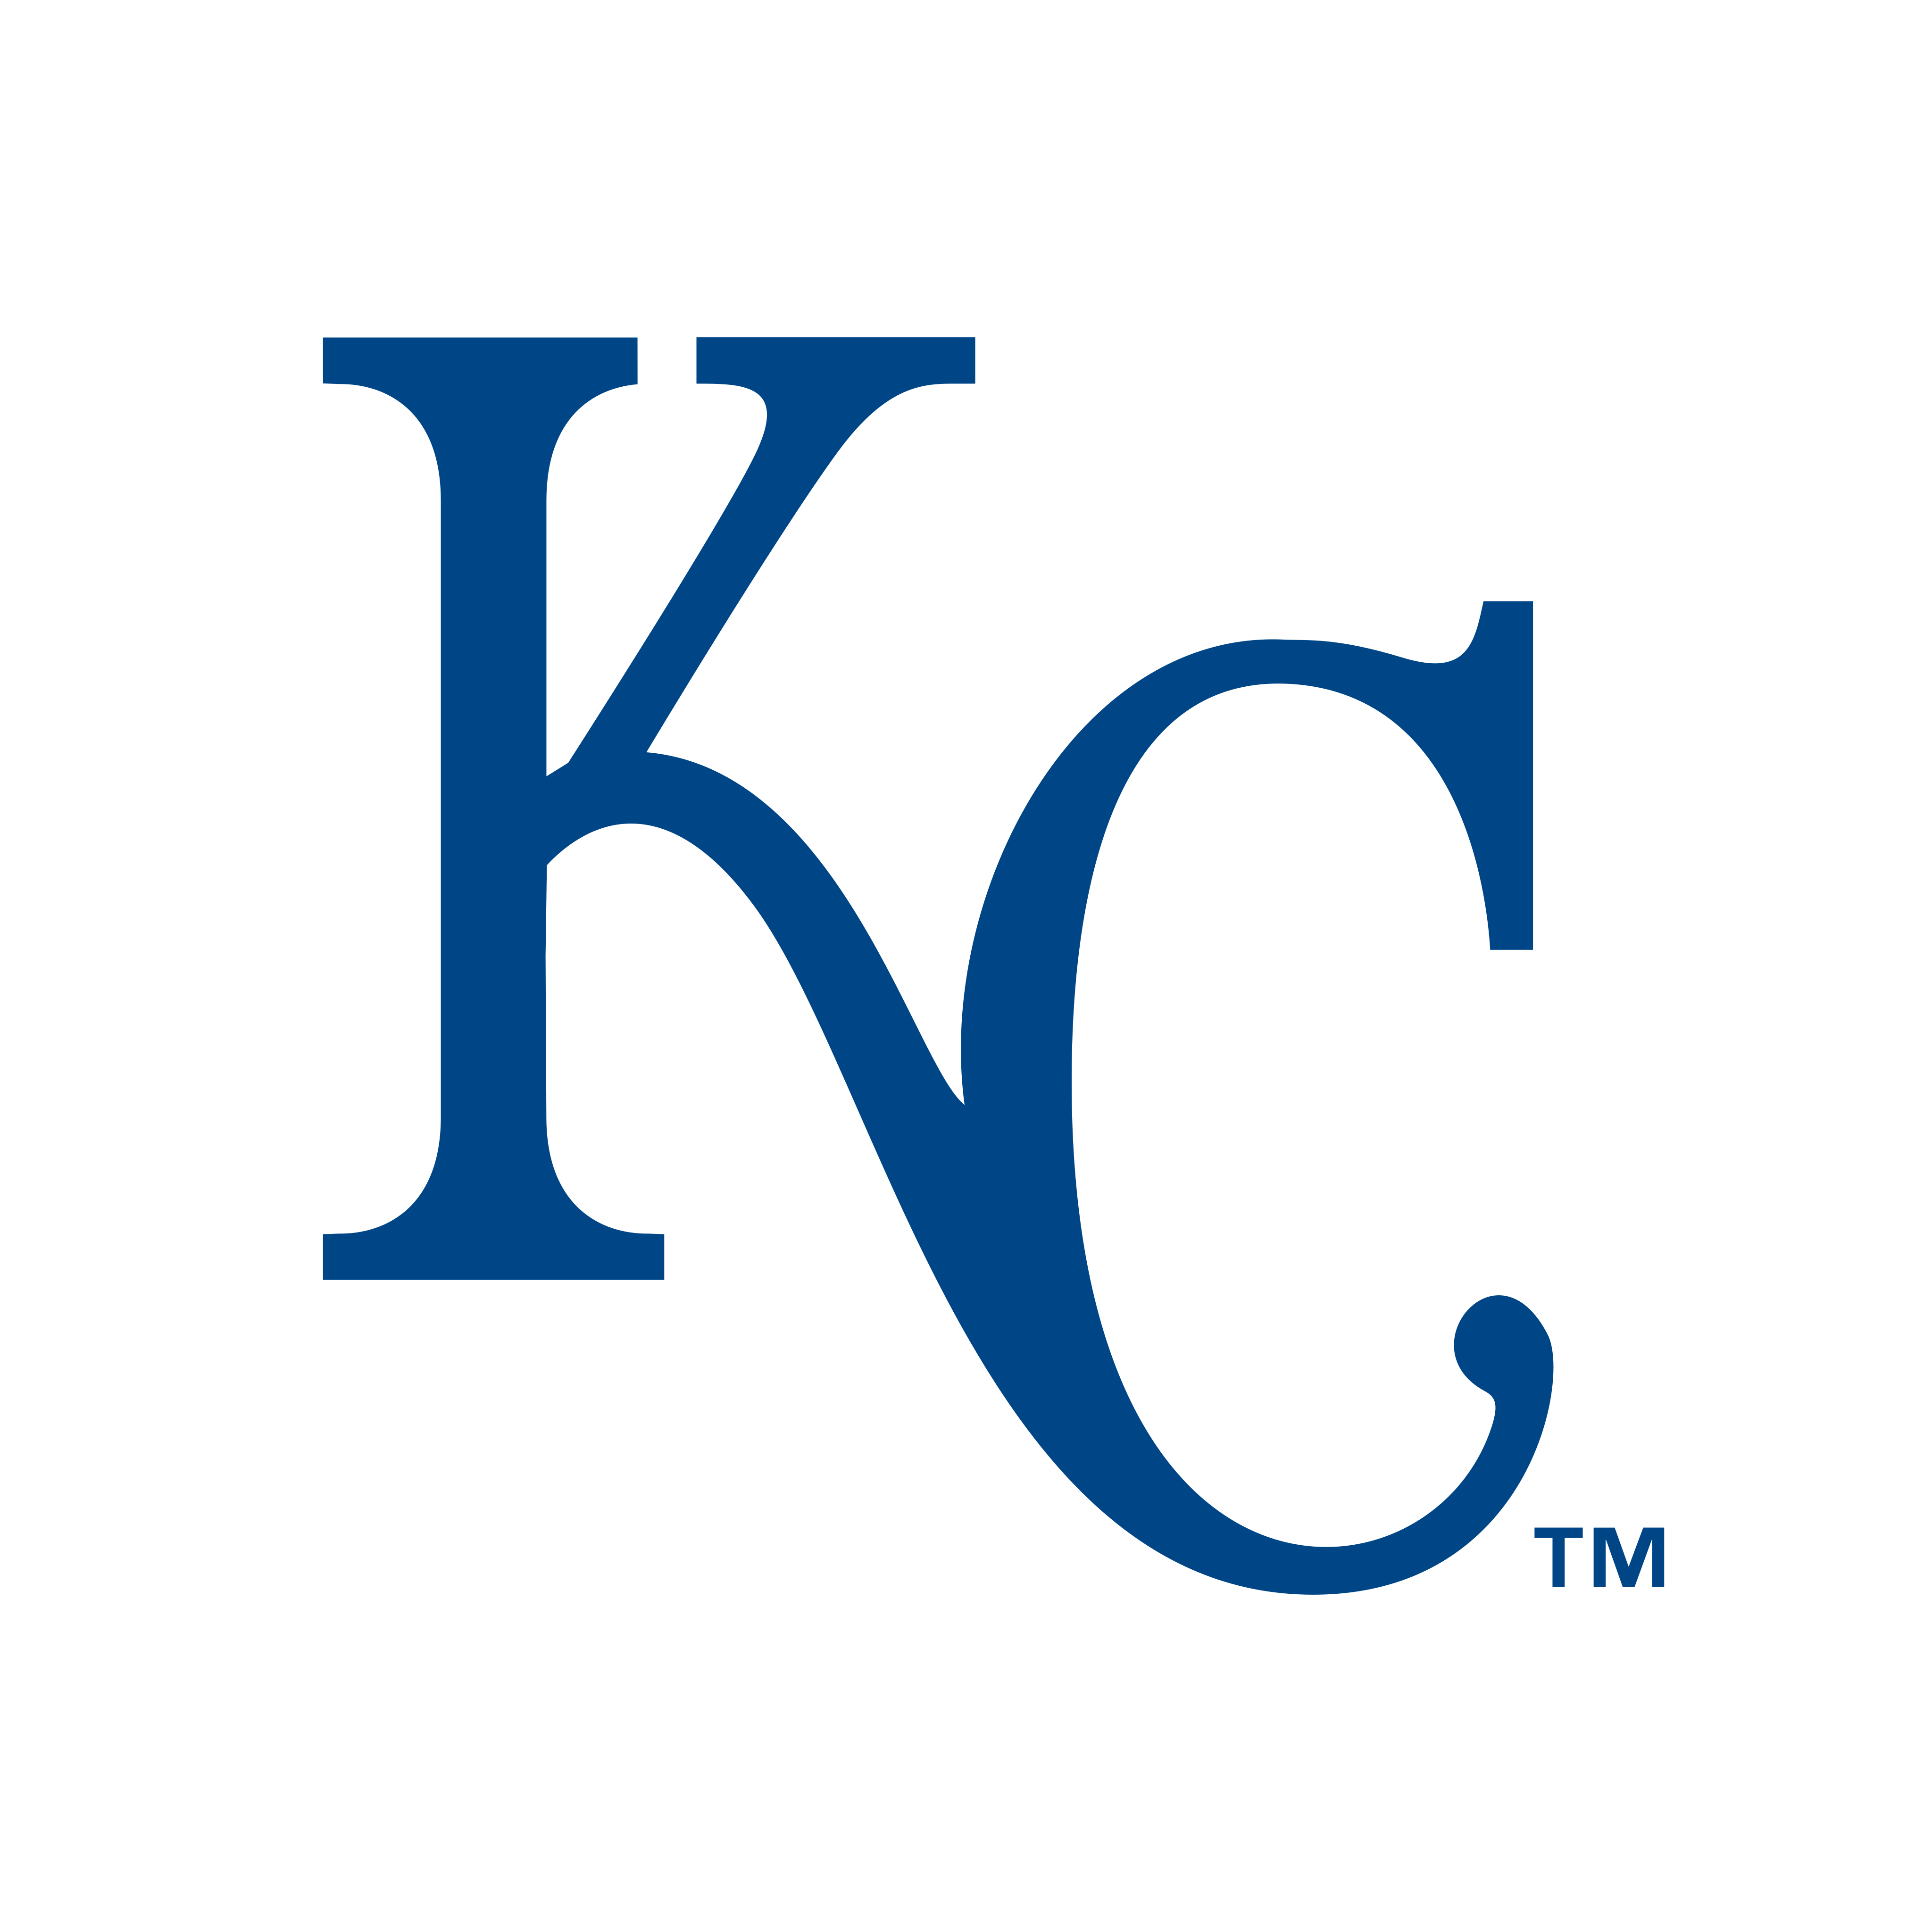 kansas city royals logo 0 - Kansas City Royals Logo